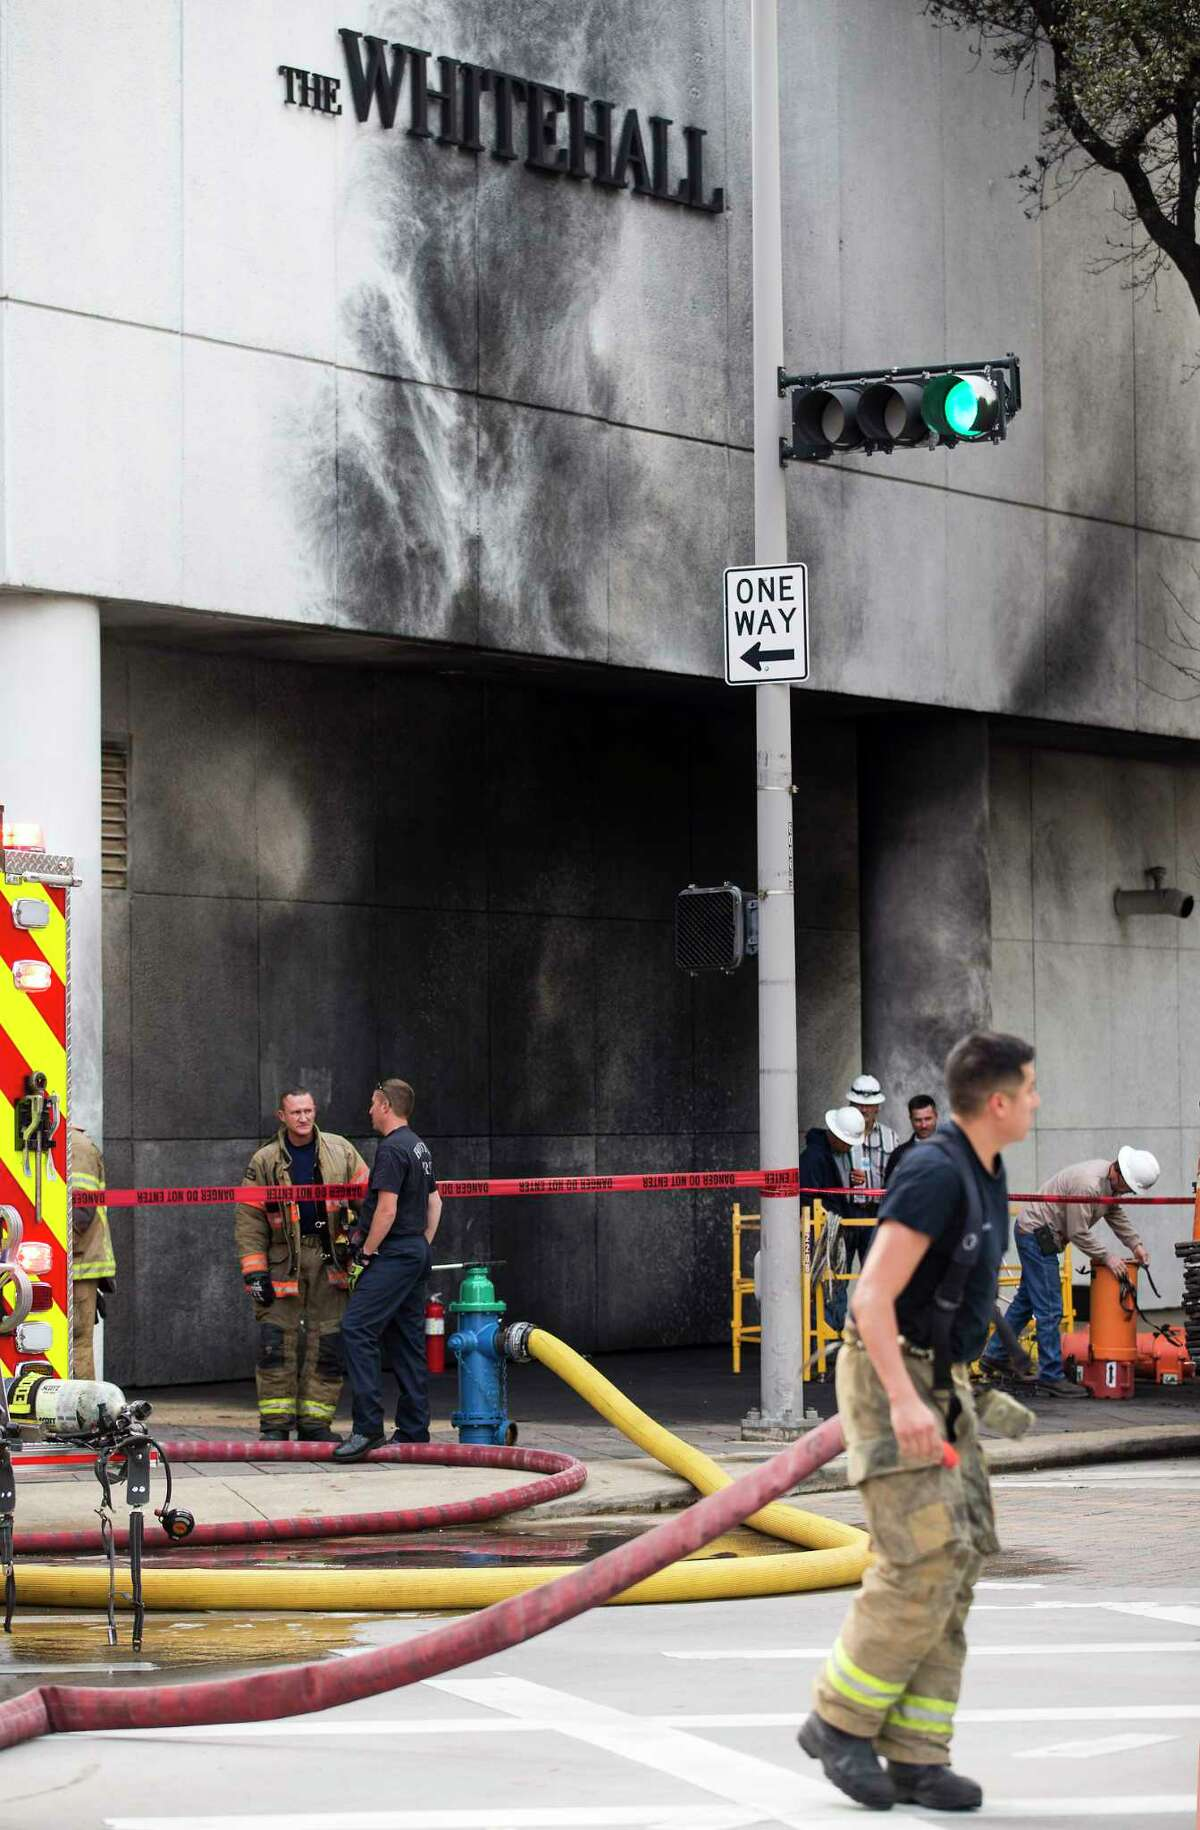 Houston firefighters work the scene of an explosion Friday at The Whitehall Hotel downtown. One person was transported to a hospital with life-threatening injuries, Deputy Chief Blake White said.